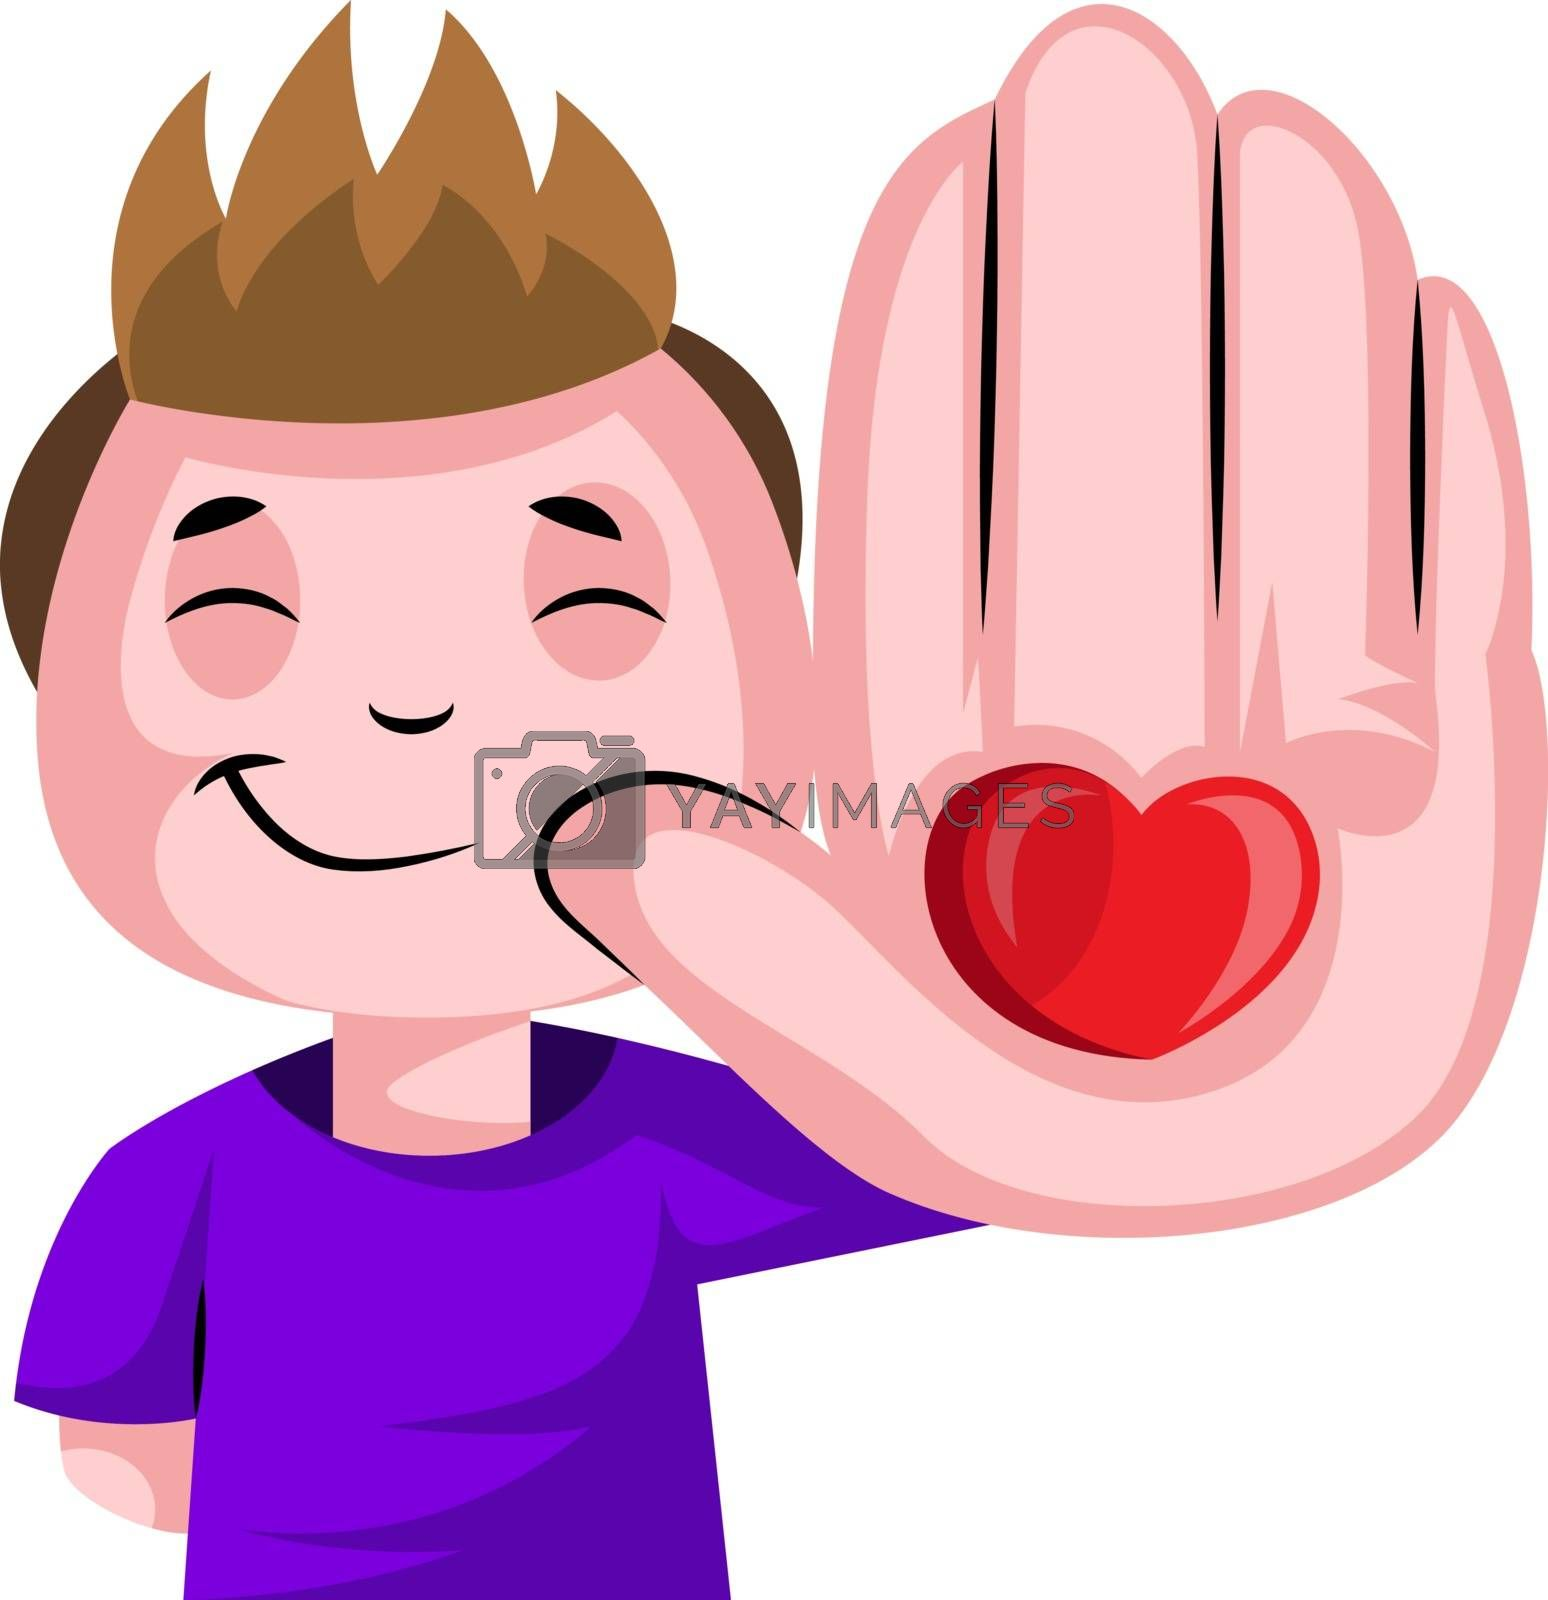 Royalty free image of Boy with heart on his palm illustration vector on white backgrou by Morphart